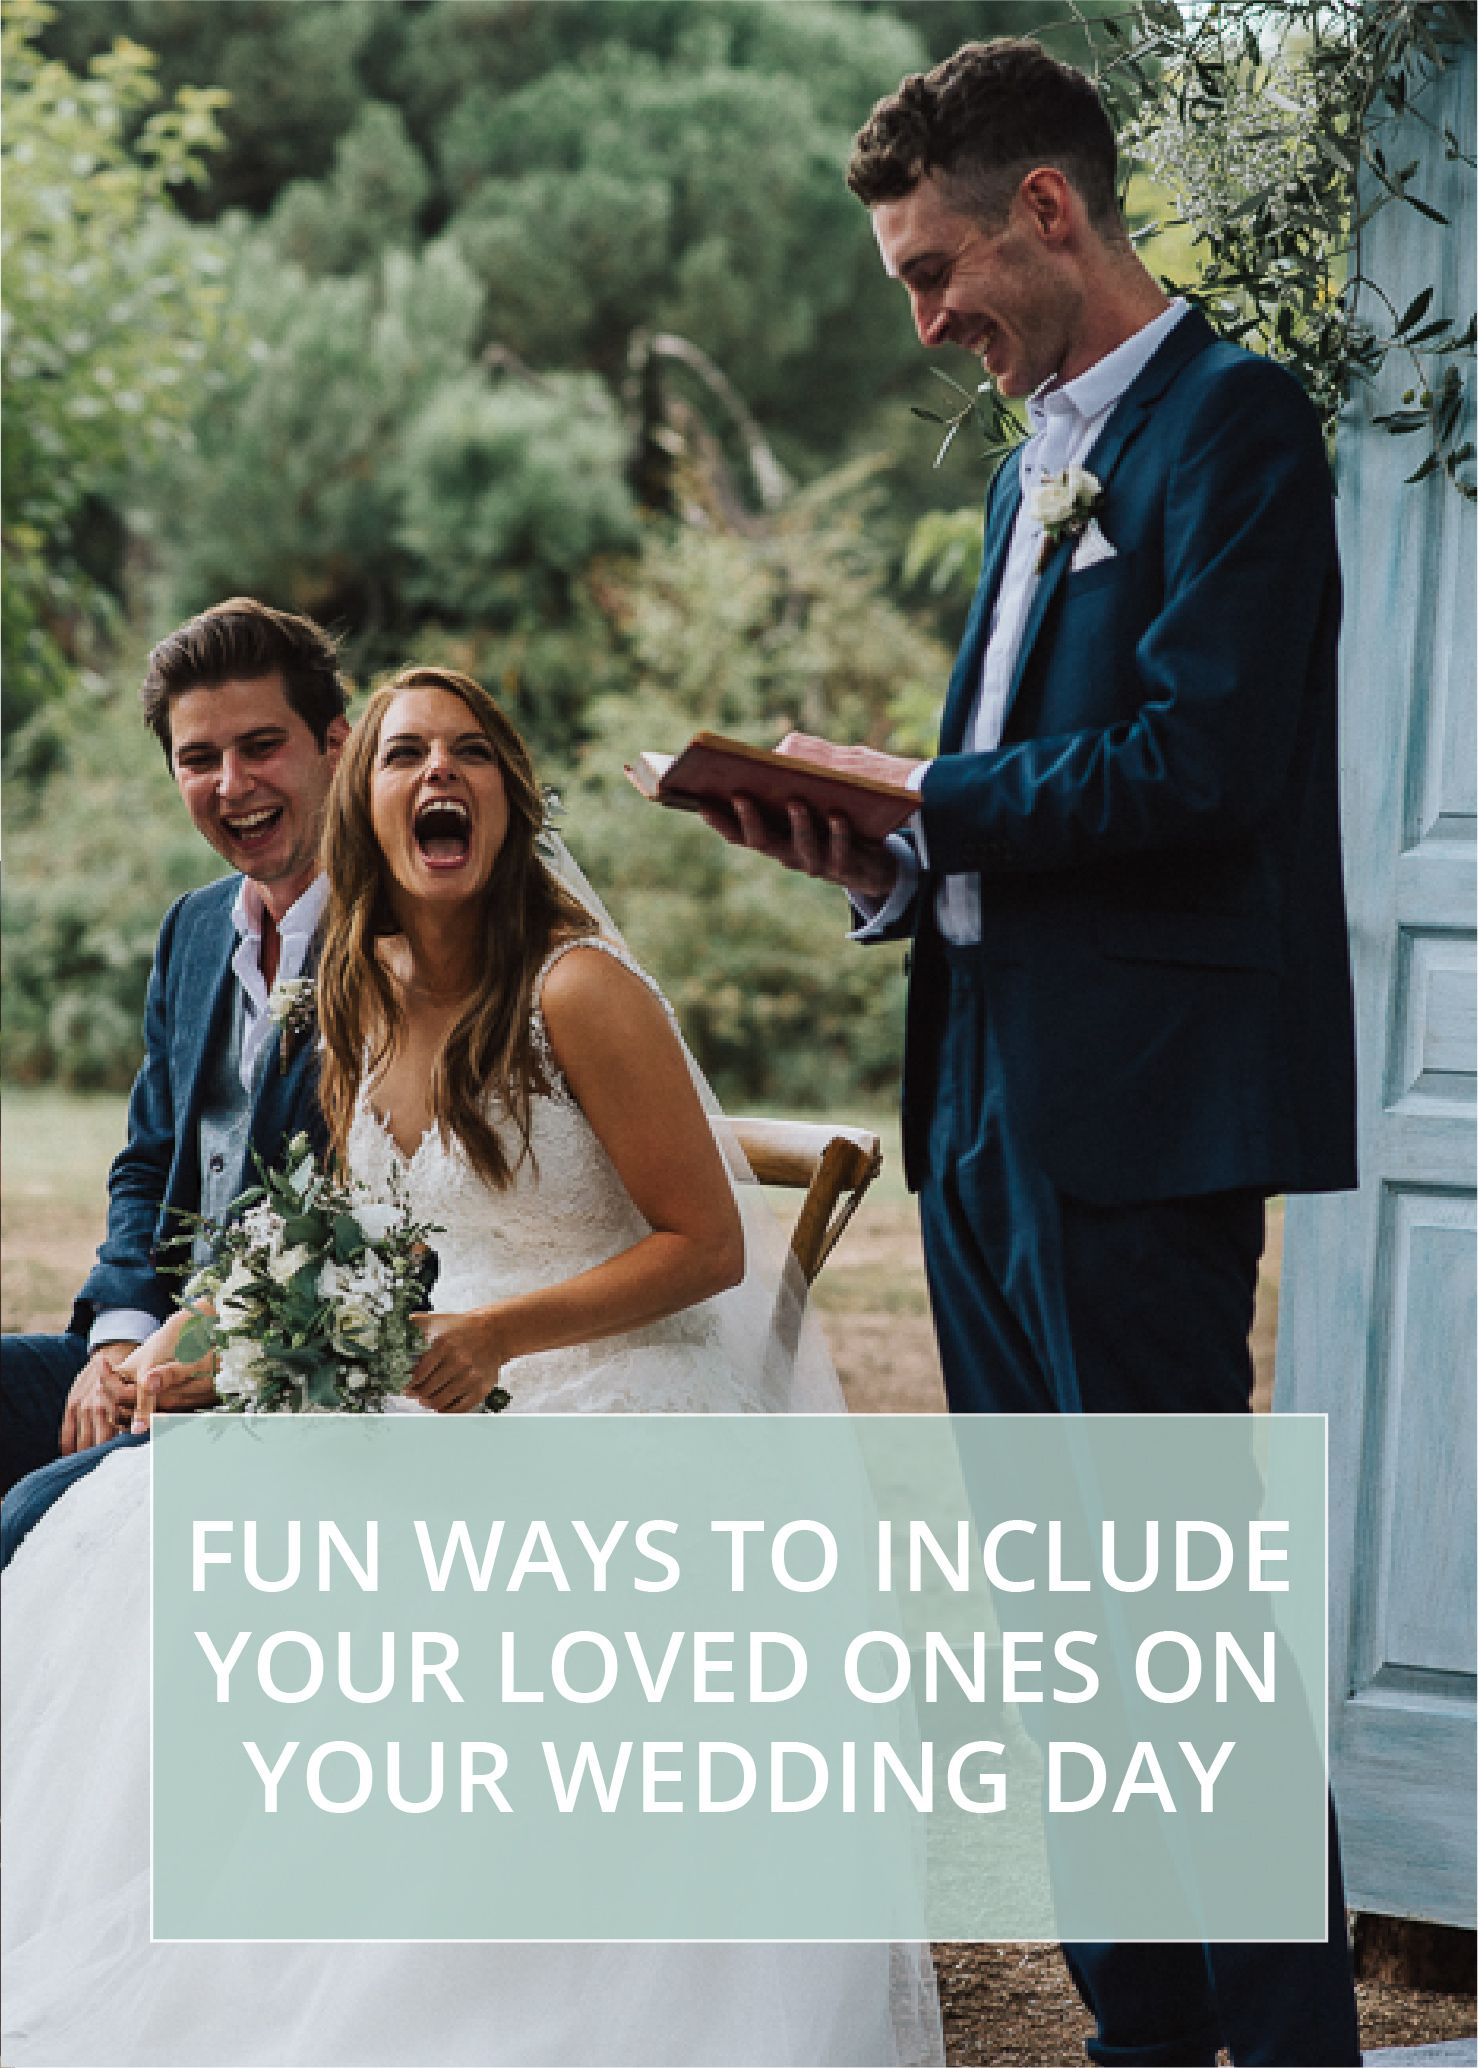 Fun Ways To Include Your Loved Ones On Your Wedding Day -   16 wedding Party roles ideas